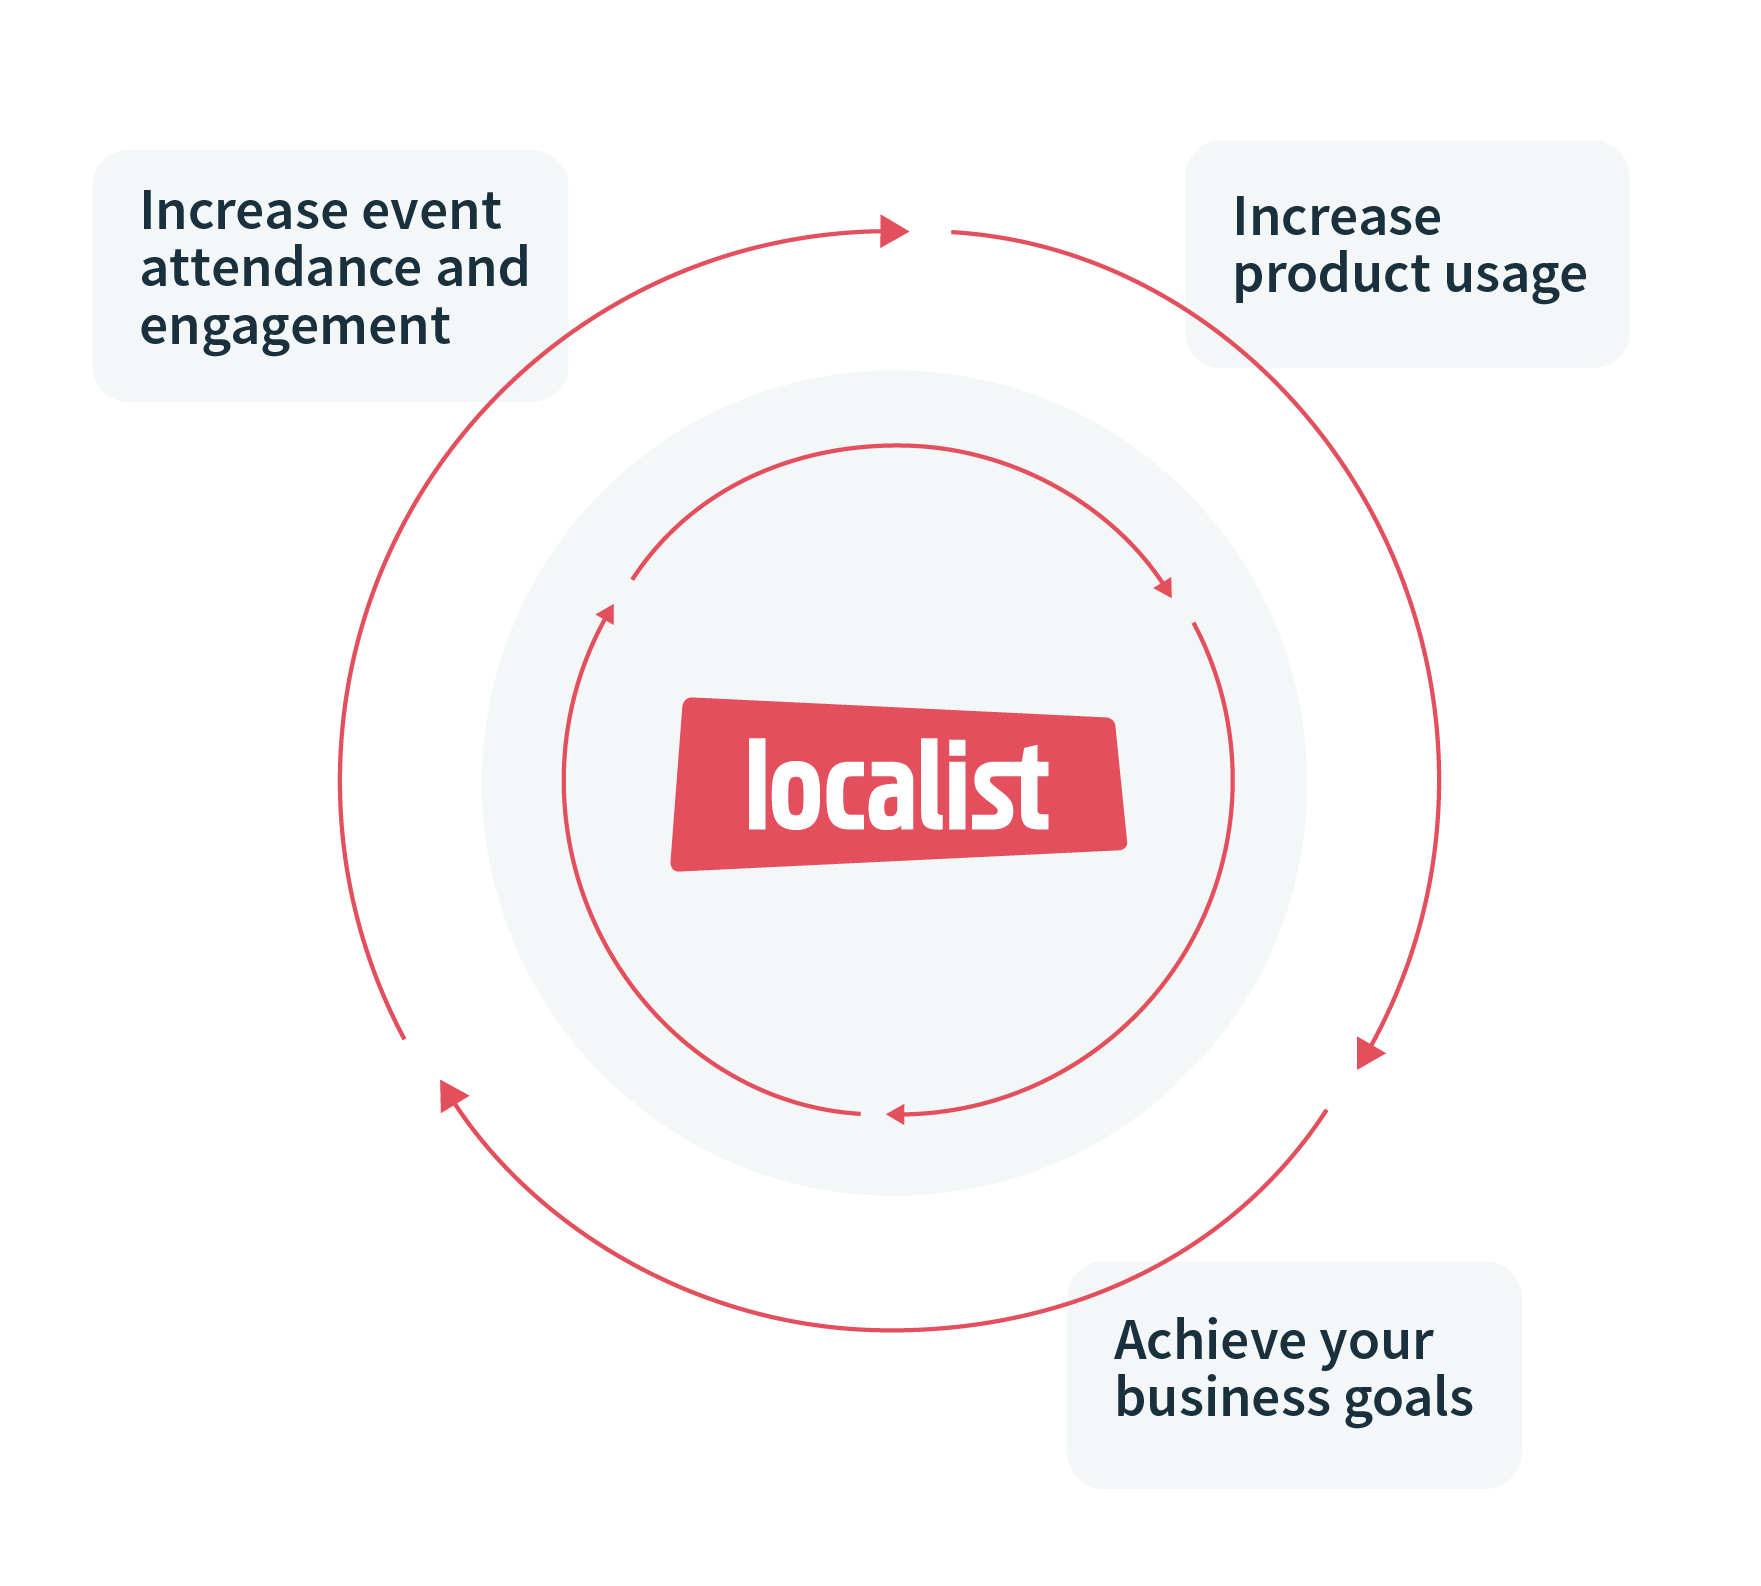 Achieve our business goals by increasing event attendance and engagement